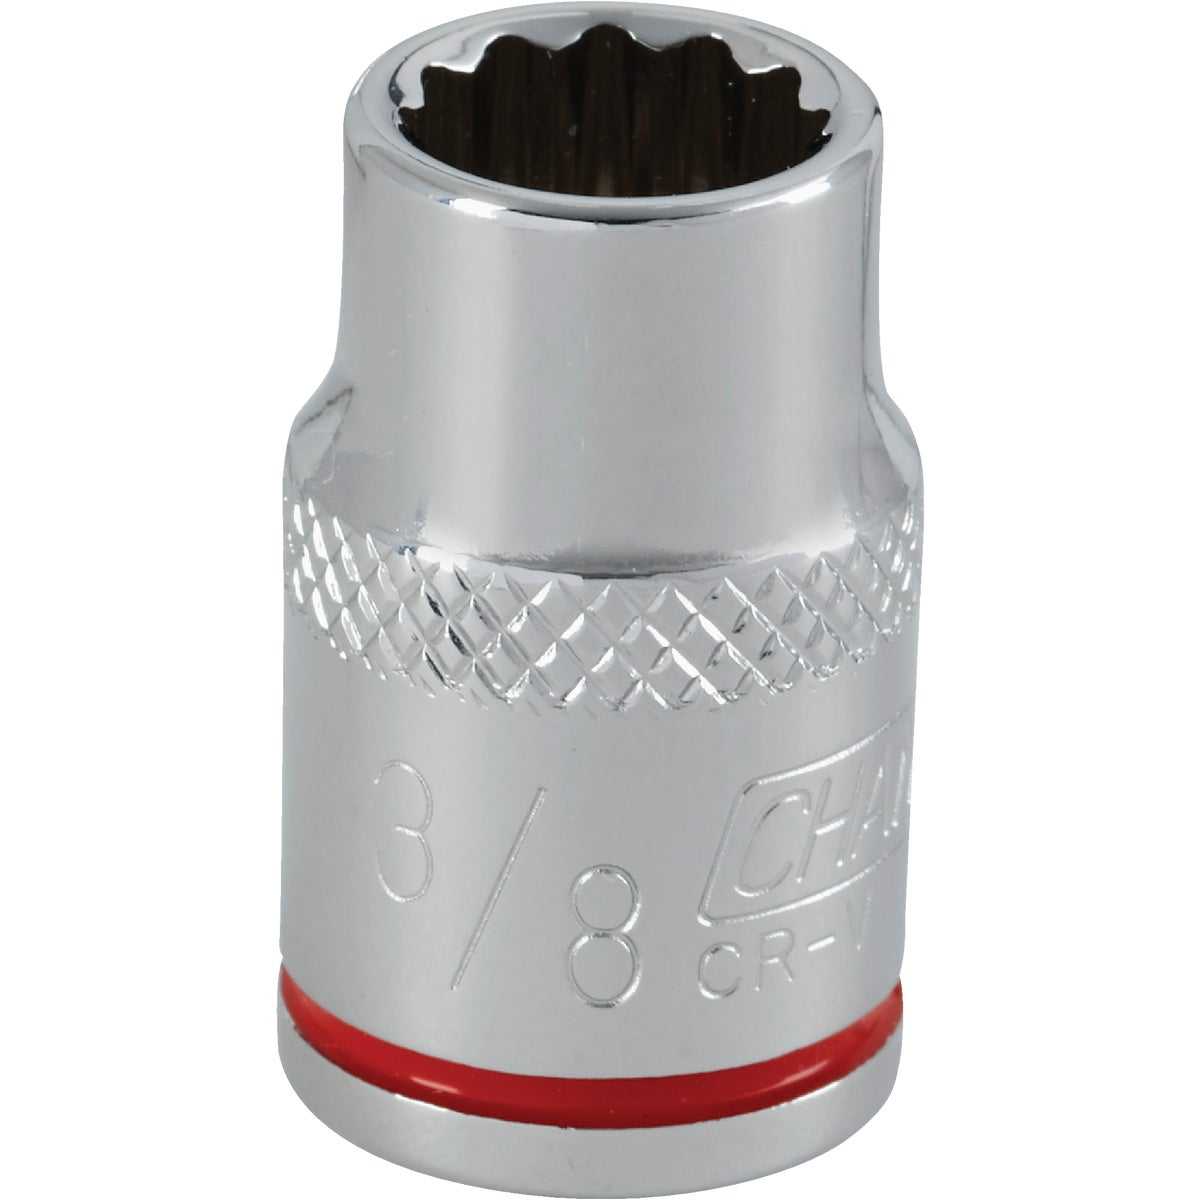 "3/8"" 3/8 DRIVE SOCKET - 305162 by Do it Best"